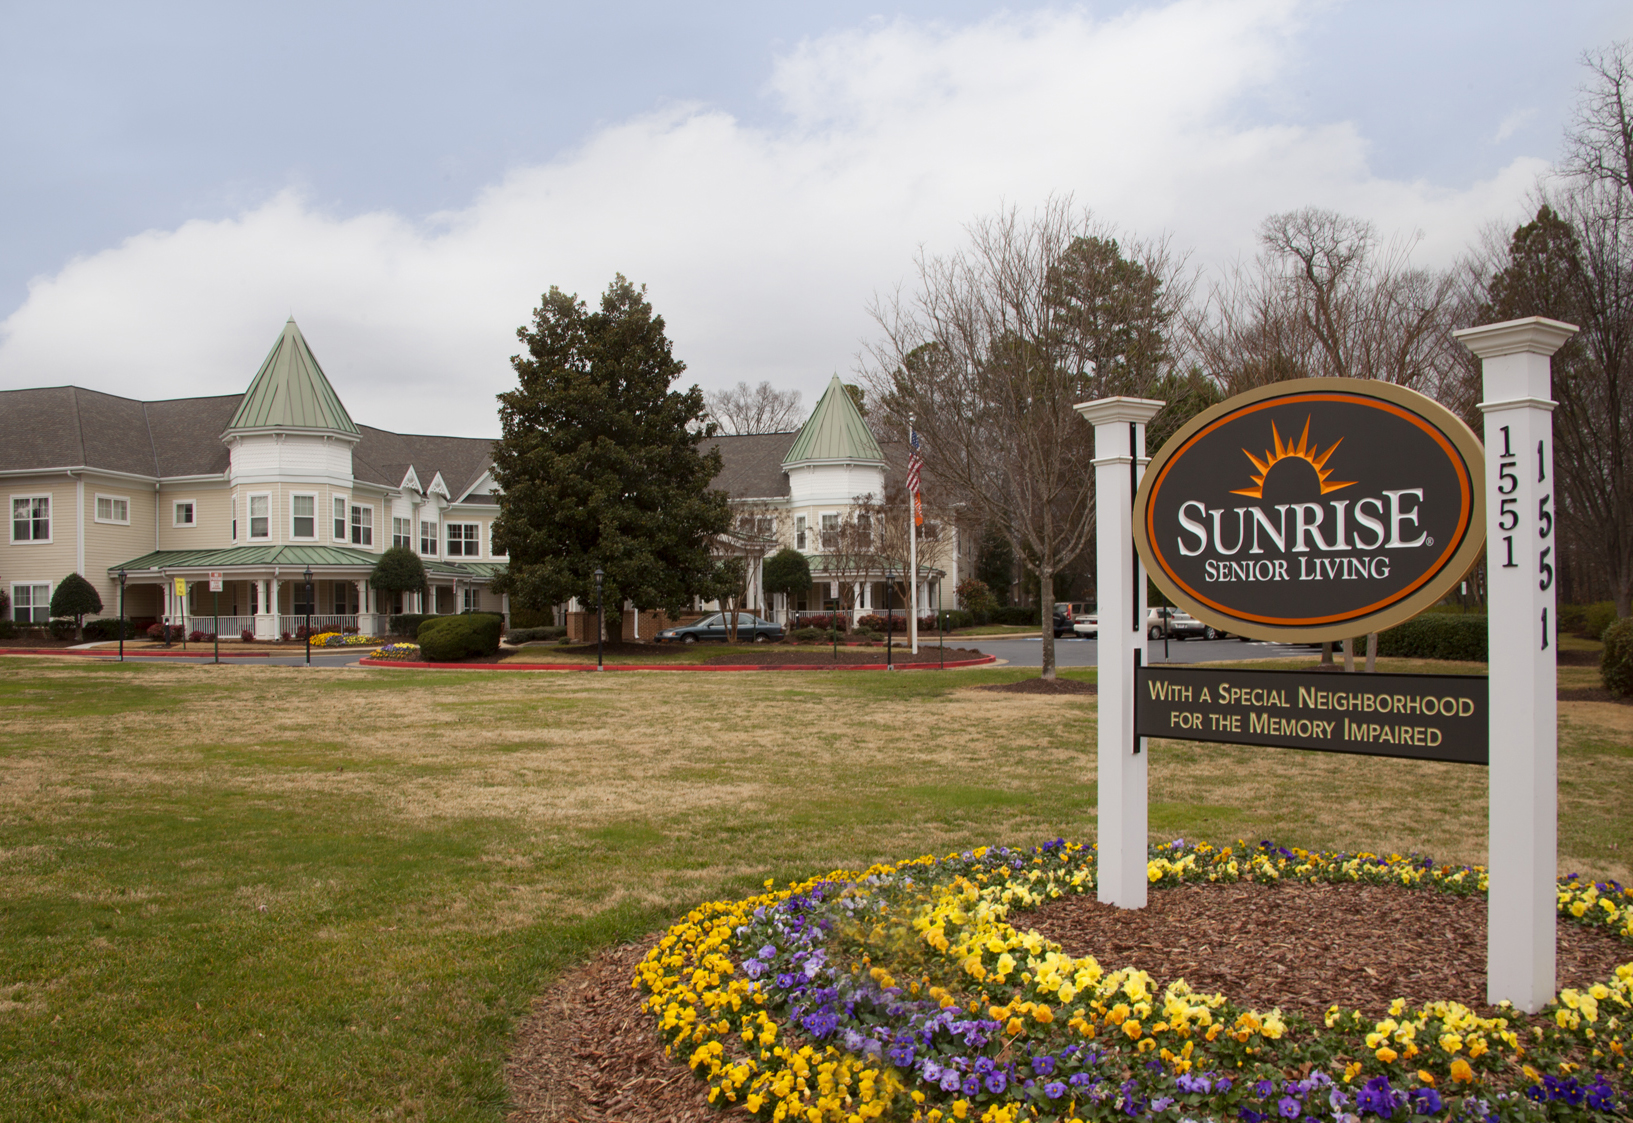 Sunrise Senior Living 1551 Johnson Ferry Rd, Marietta, GA 30062 - YP.com